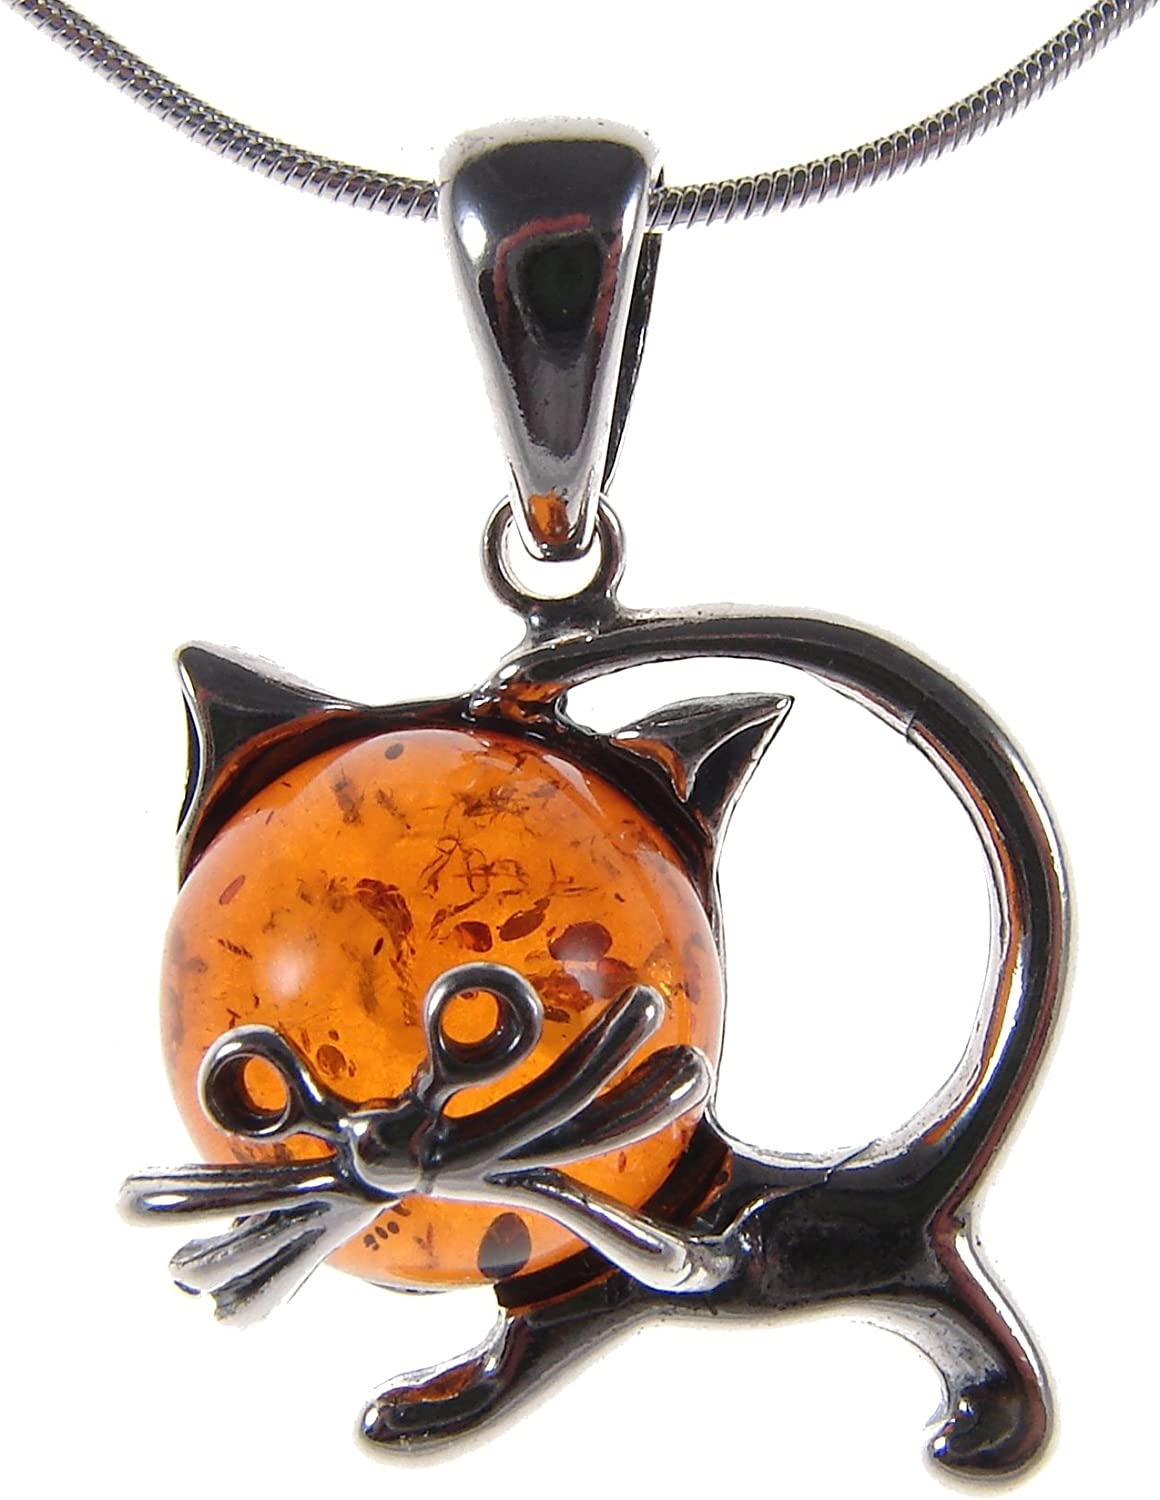 BALTIC AMBER AND STERLING SILVER 925 DOLPHIN ANIMAL PENDANT NECKLACE 10 12 14 16 18 20 22 24 26 28 30 32 34 36 38 40 1mm ITALIAN SNAKE CHAIN